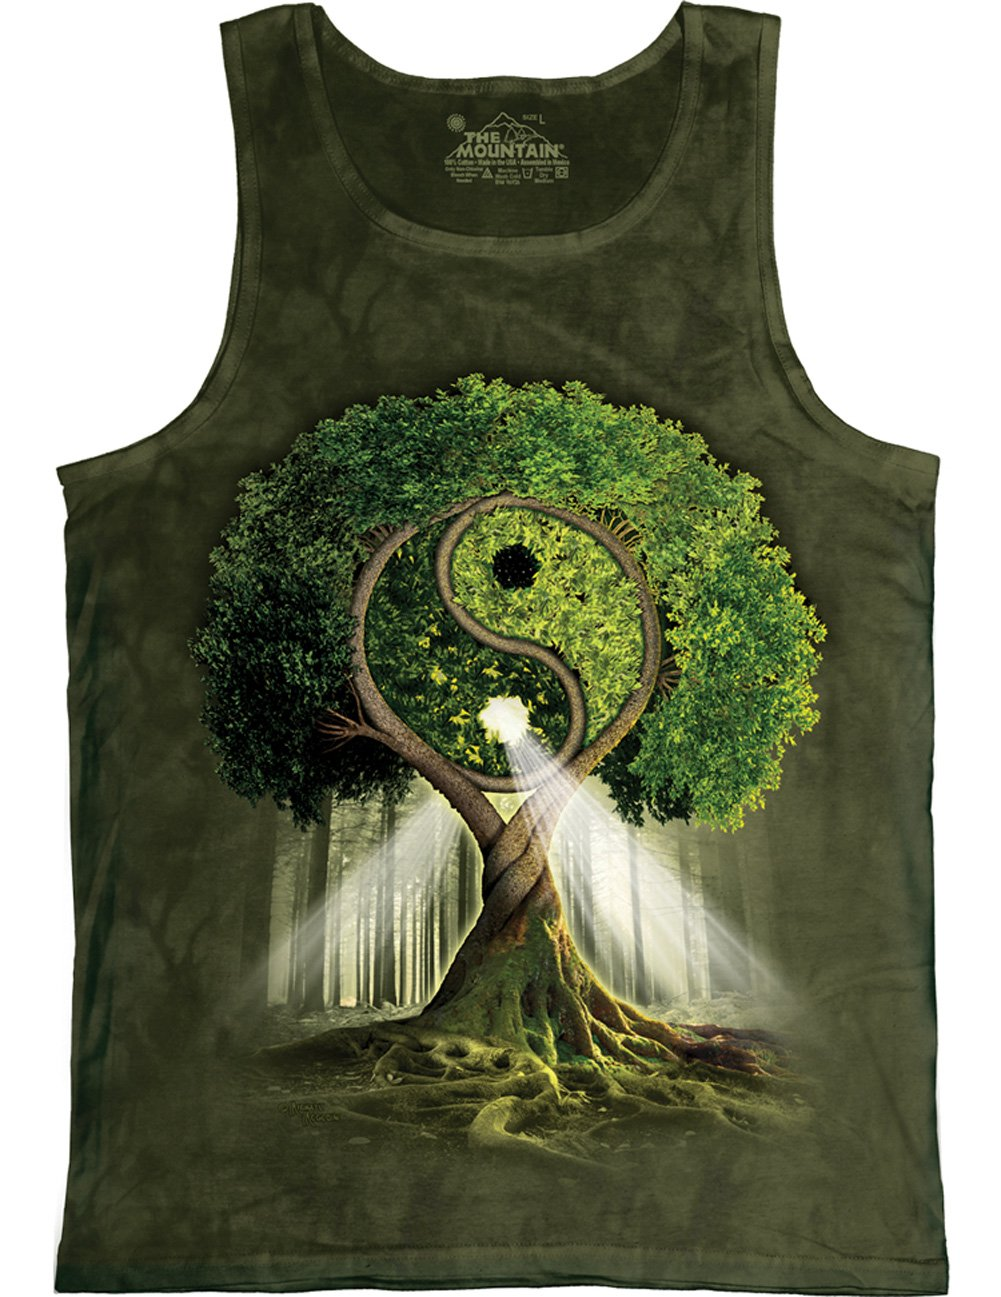 The Mountain Unisex Erwachsen Yin Yang Tree Tank Top: Amazon.de: Bekleidung